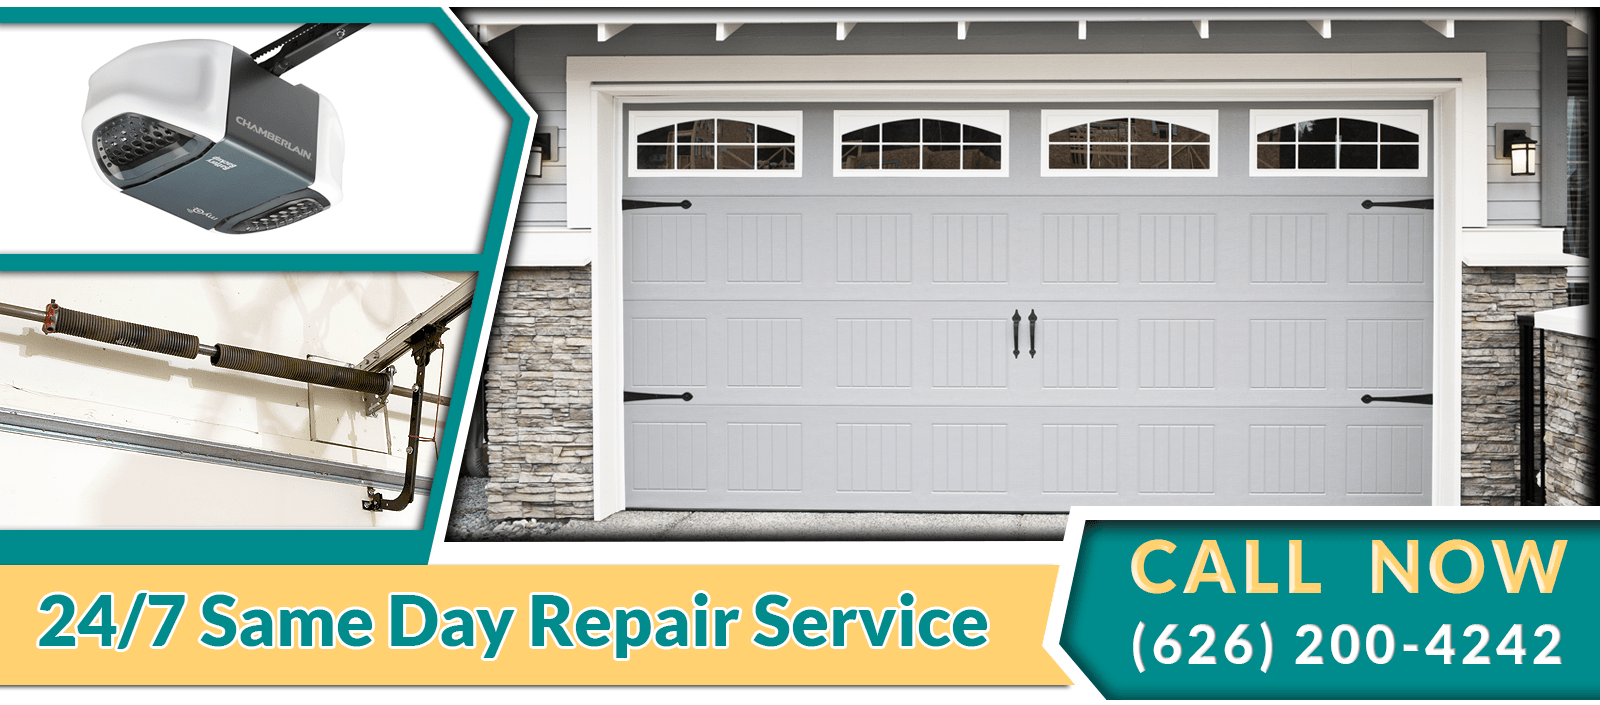 garage door repair pasadena ca same day service 626. Black Bedroom Furniture Sets. Home Design Ideas